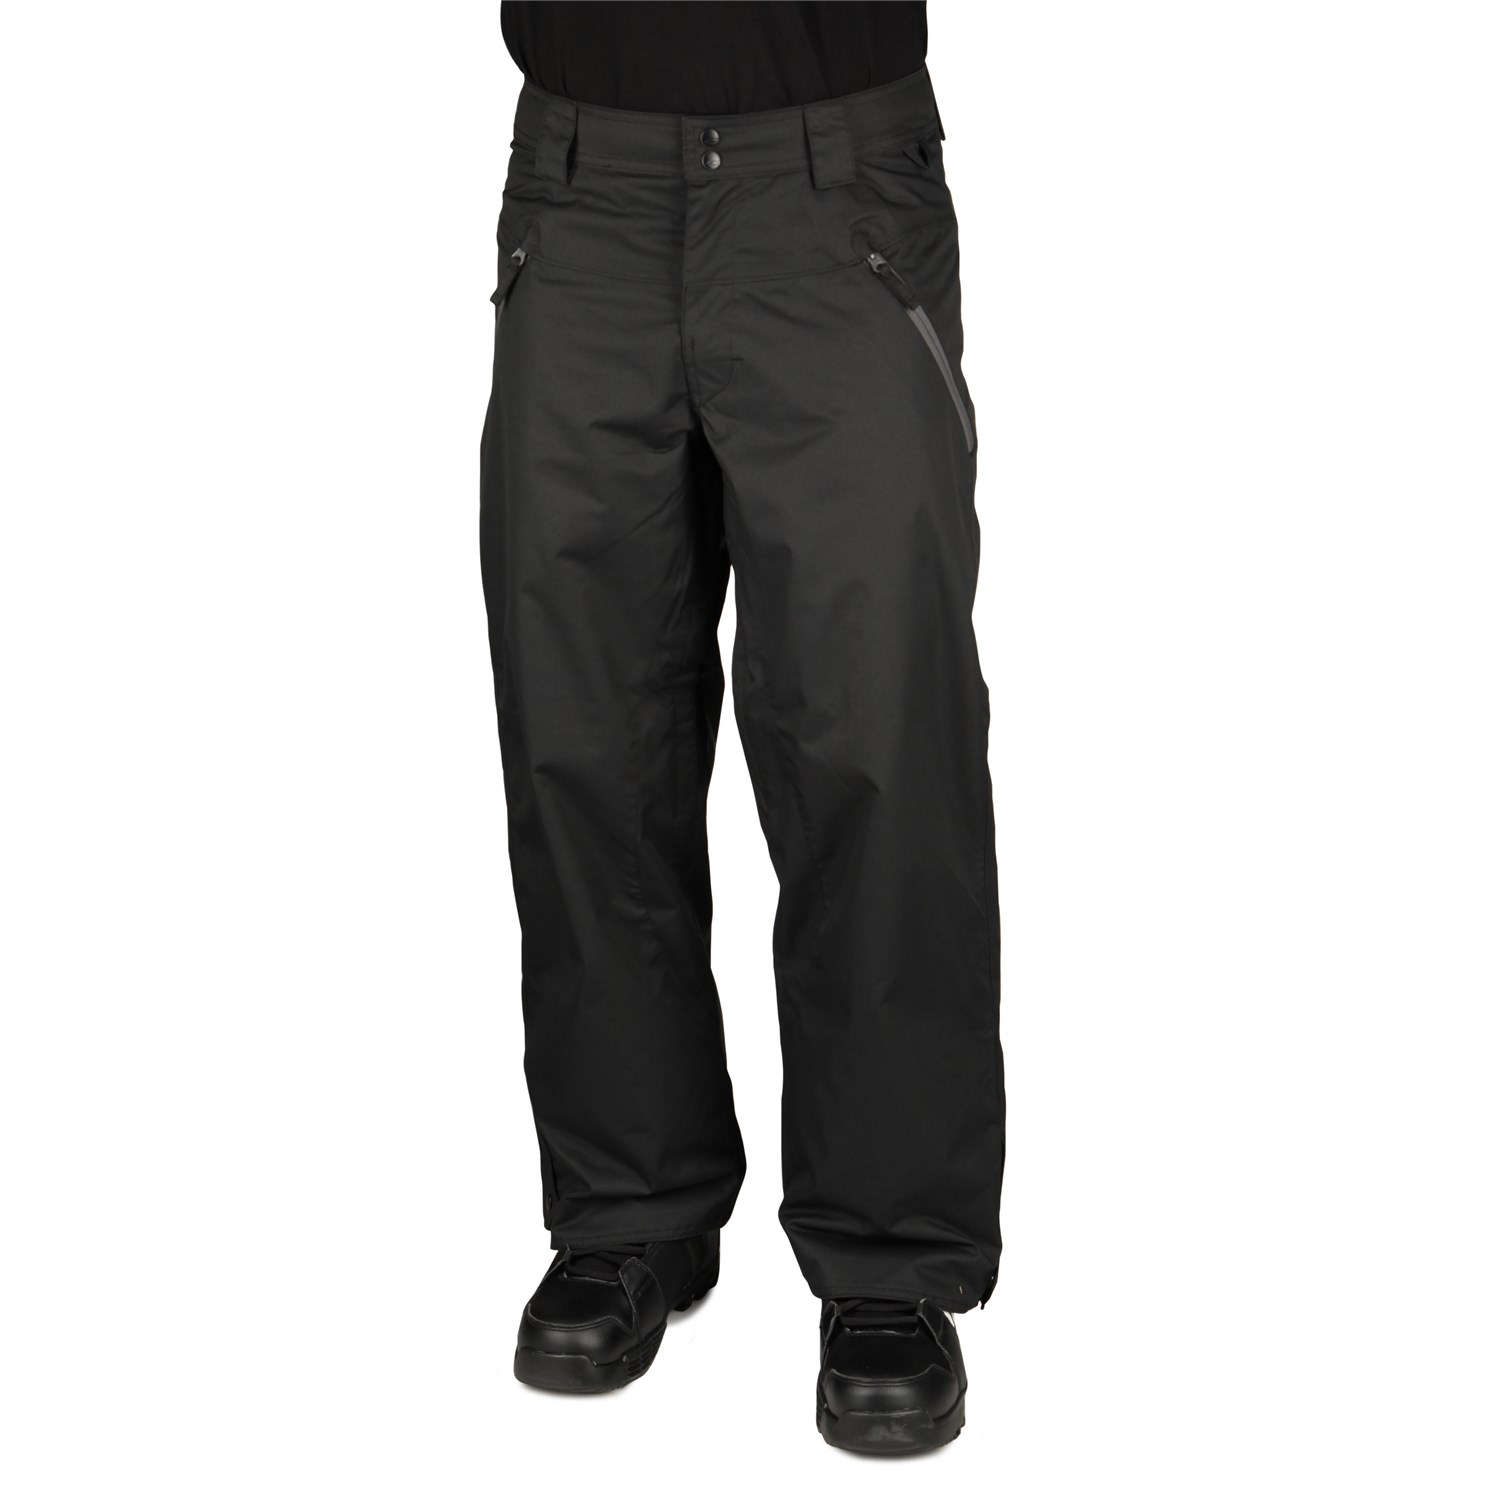 OAKLEY SHELF LIFE PANTS BLACK